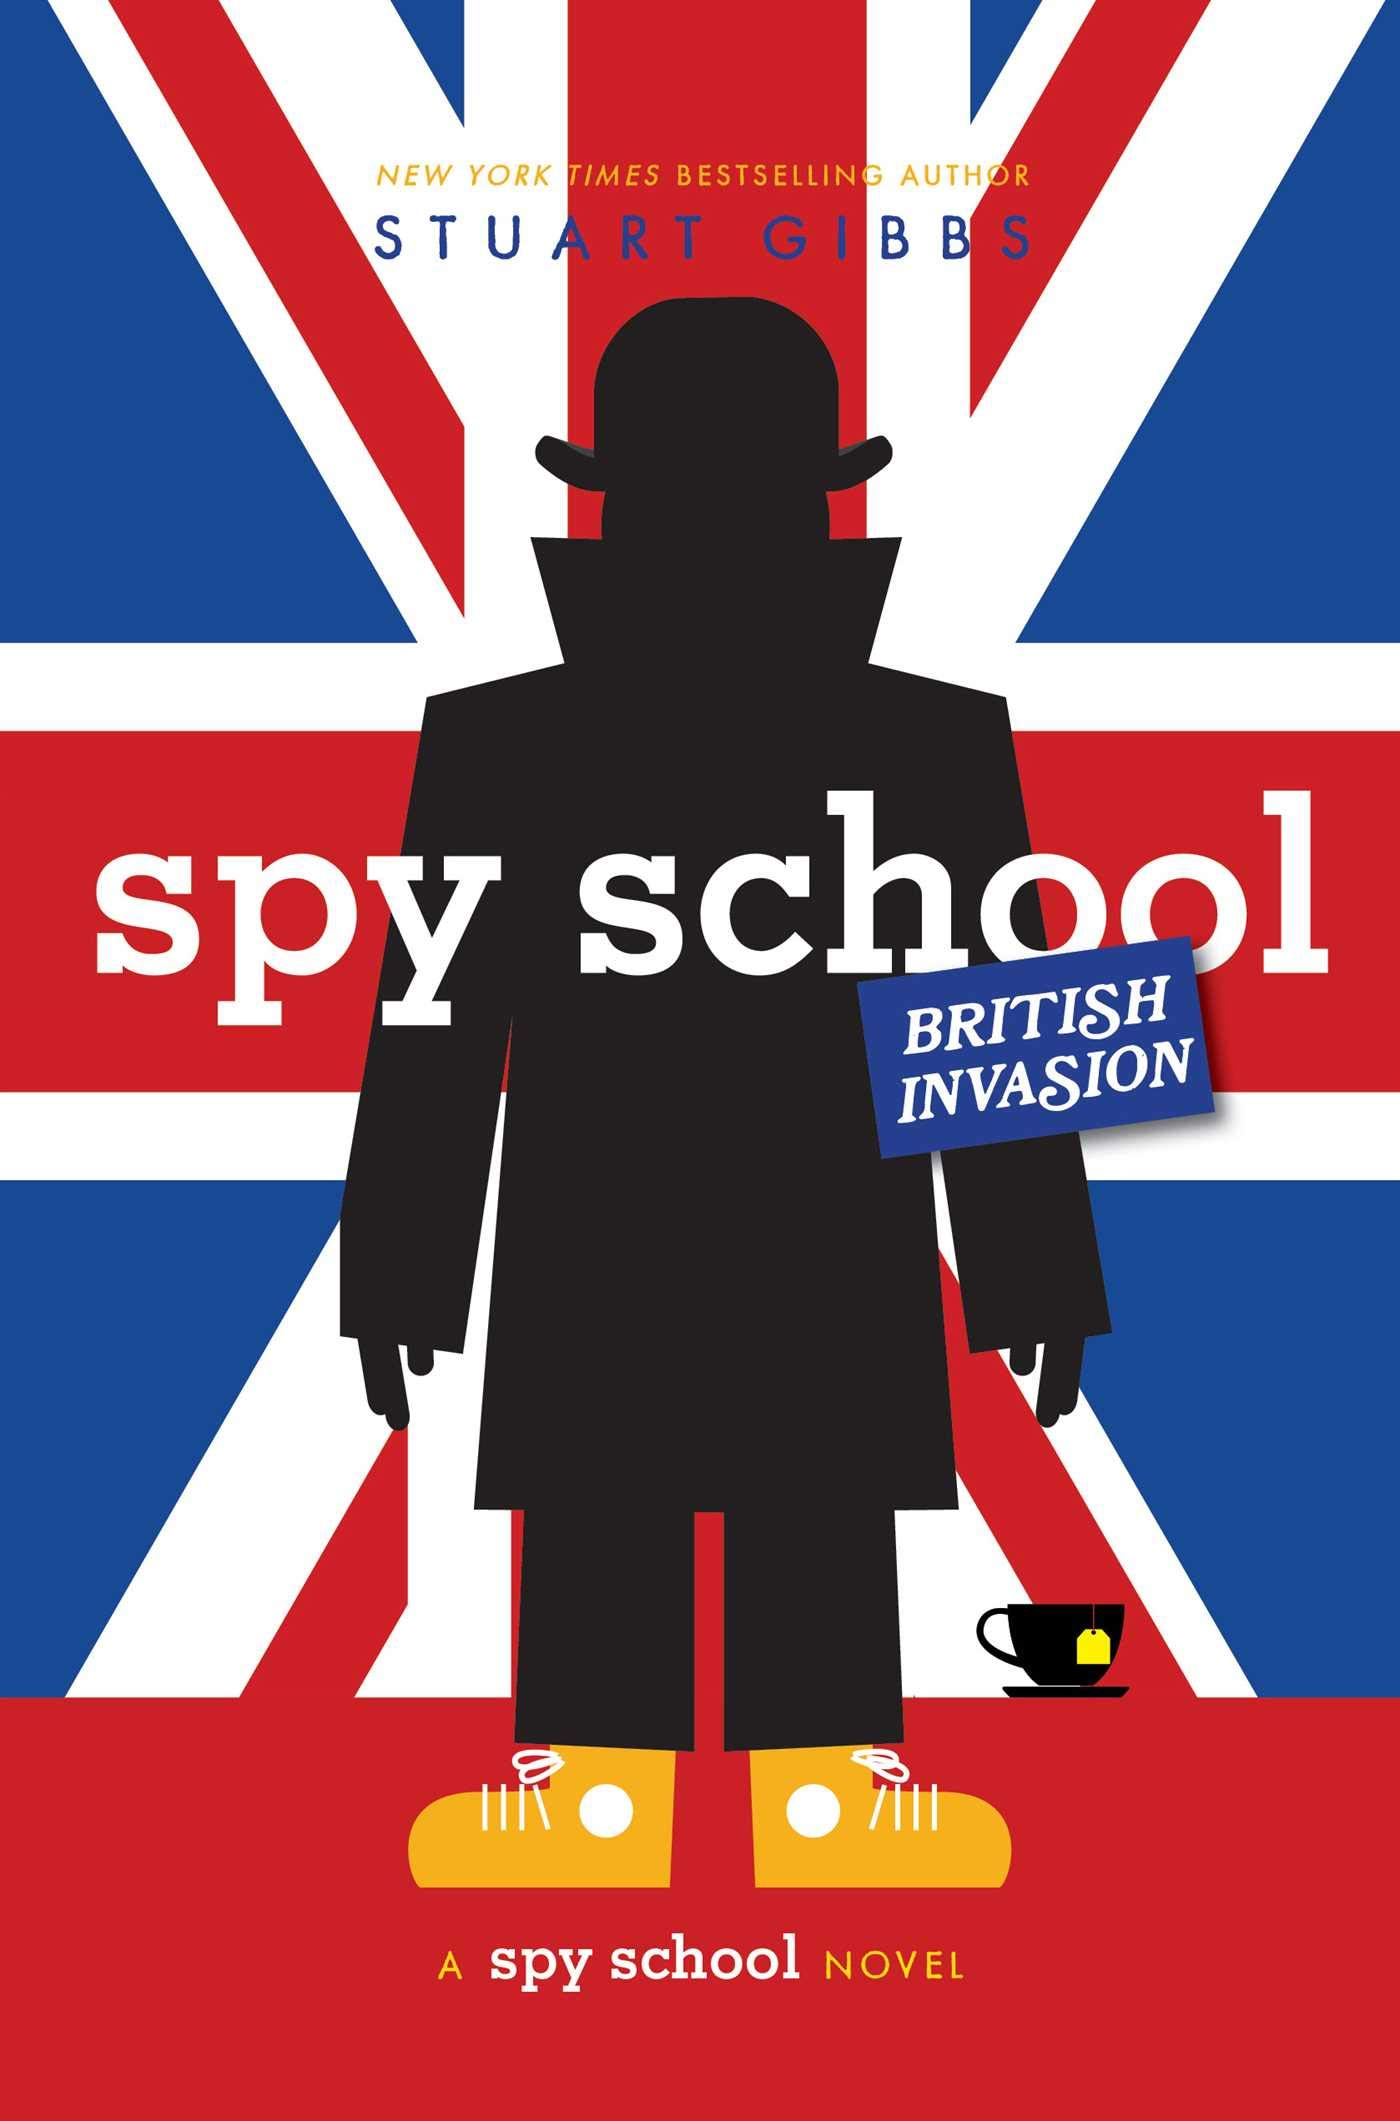 Stuart Gibbs – Spy School British Invasion